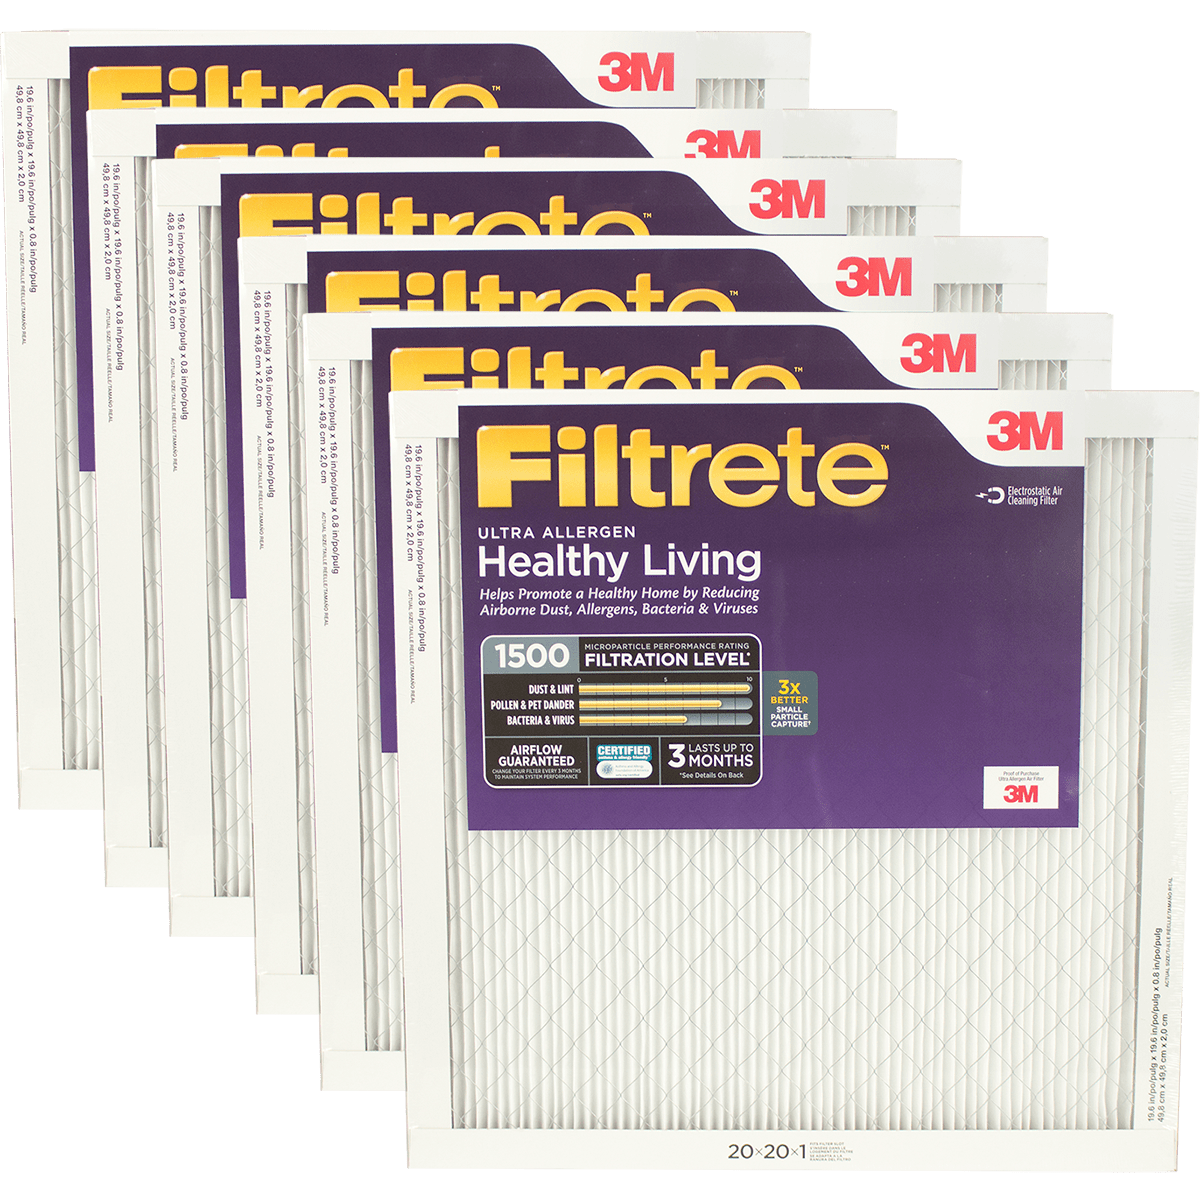 3M Filtrete Healthy Living 1500 MPR Ultra Allergen Reduction Filters, 1 Inch fi5355